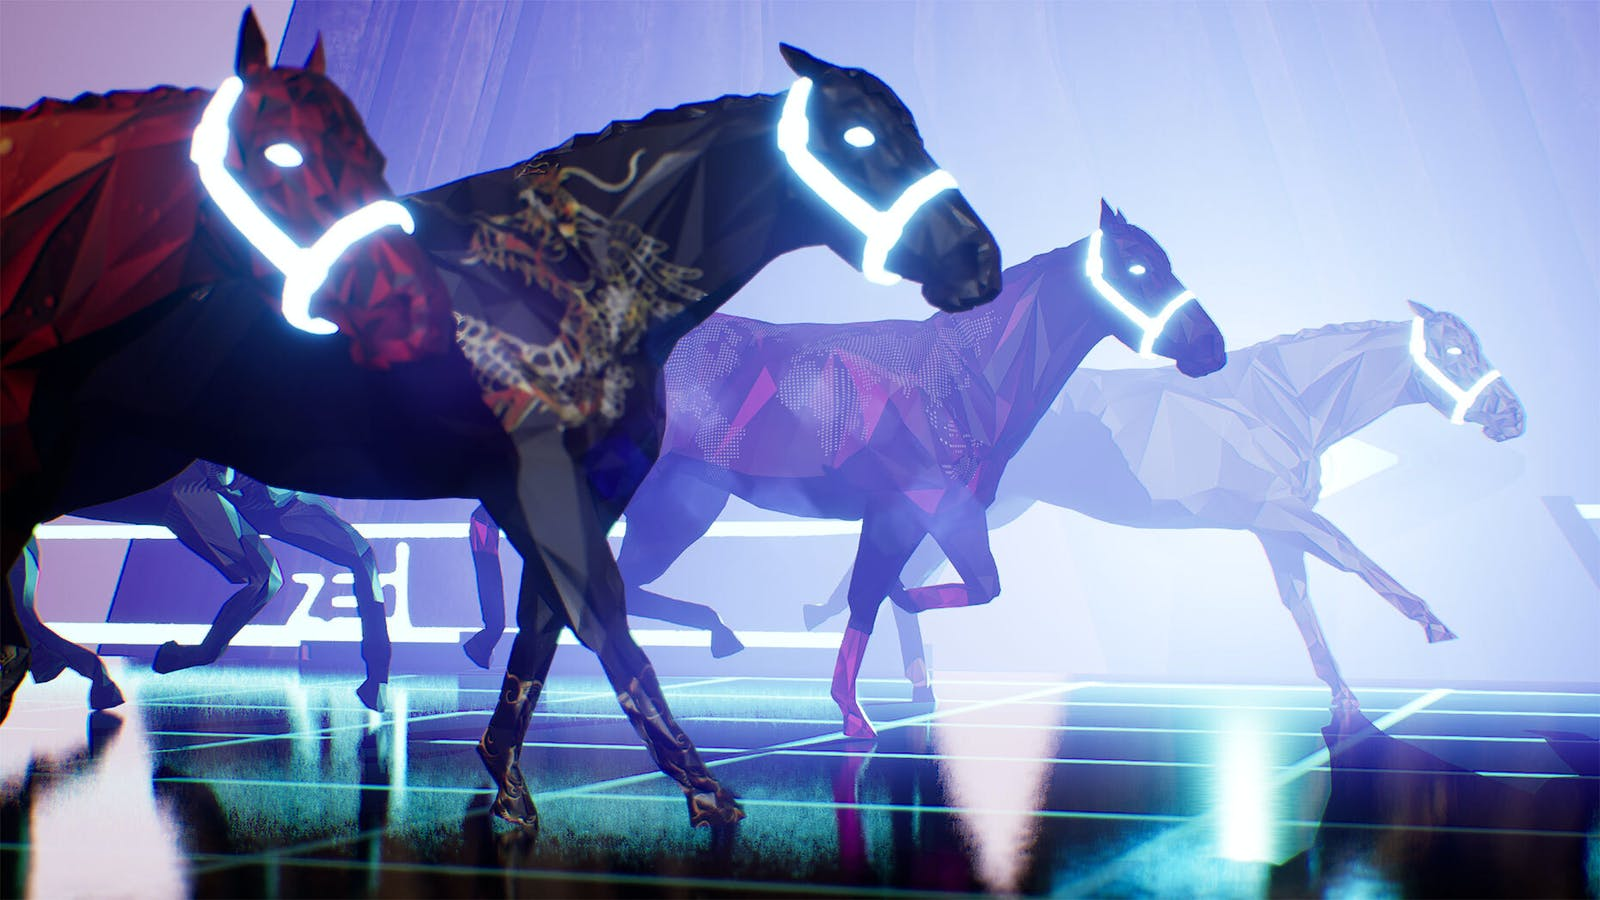 An image from ZED RUN, an online game that allows players to race, breed and sell NFT horses. Photo: Virtually Human Studio